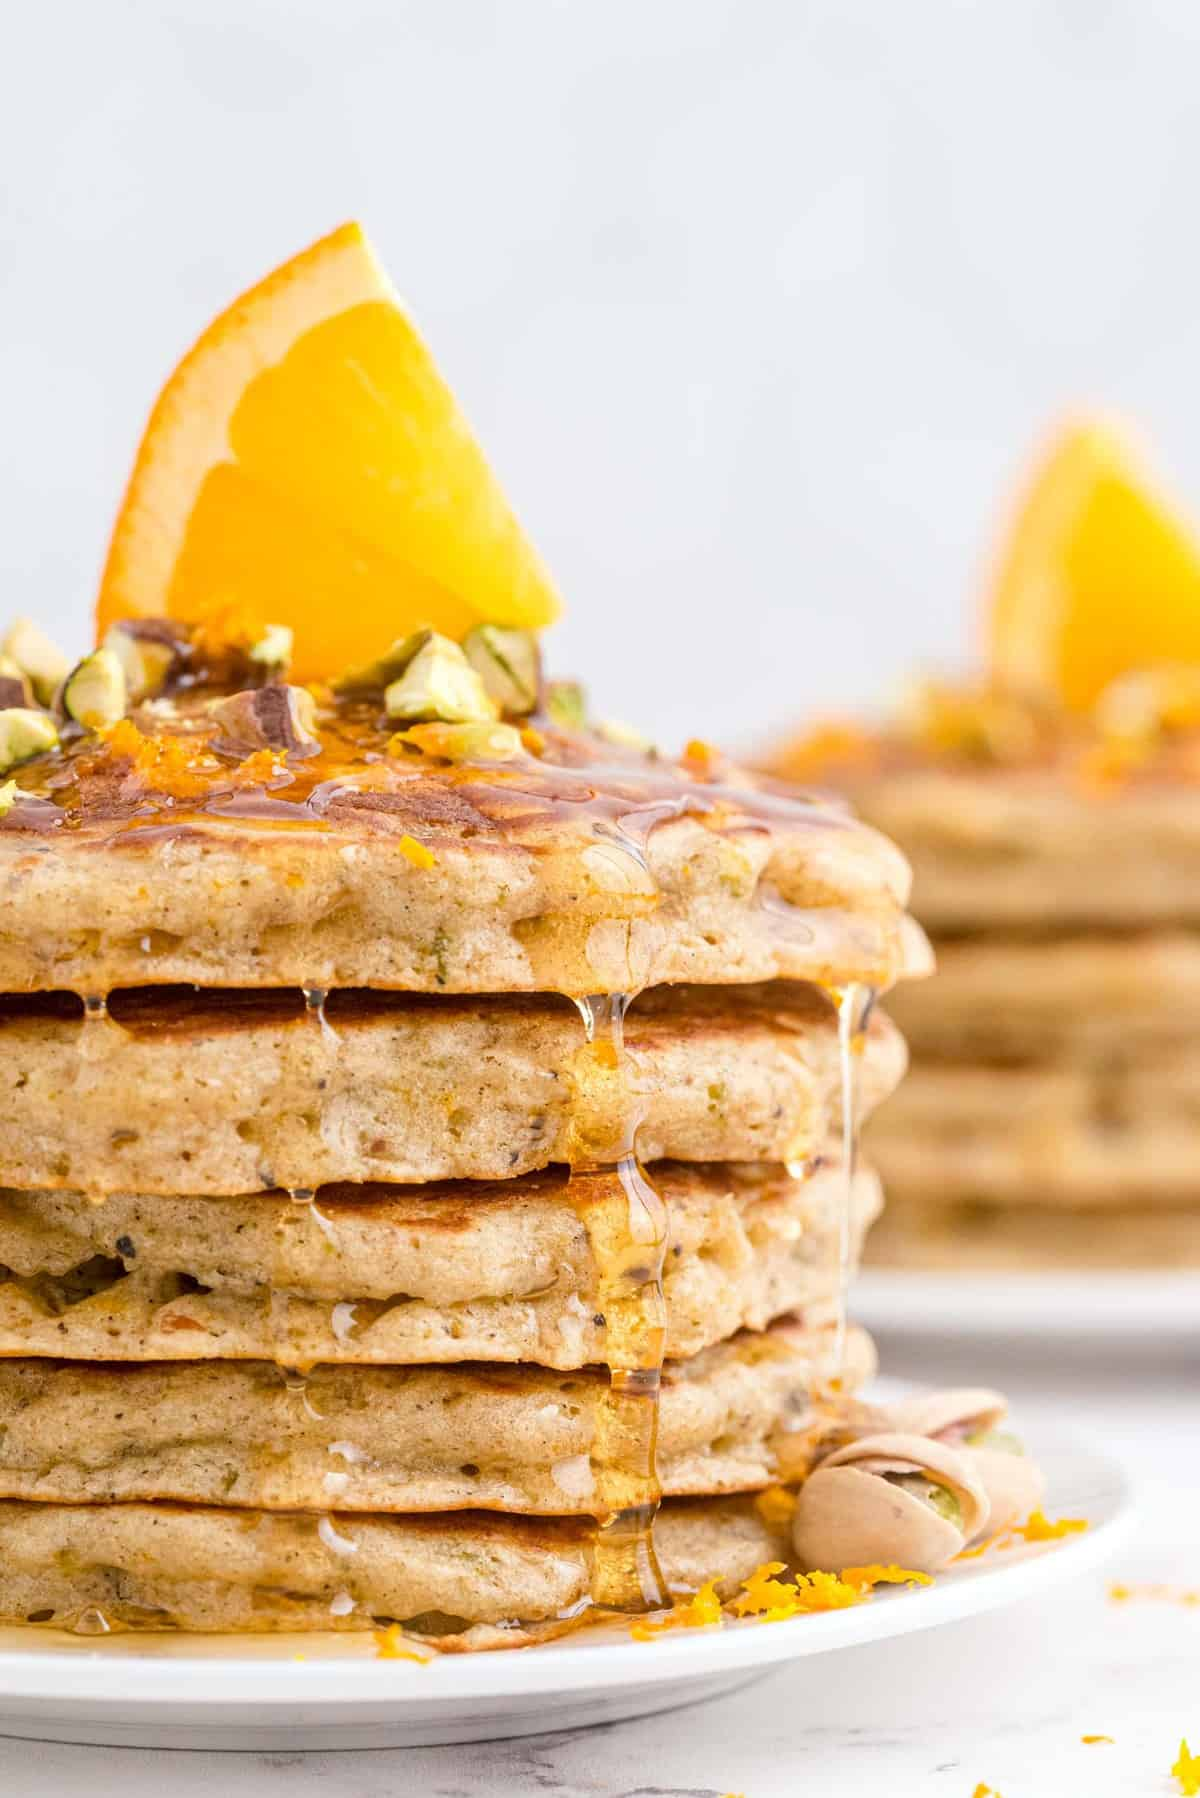 Stack of pancakes on a white plate, topped with pistachios, honey, and an orange slice.